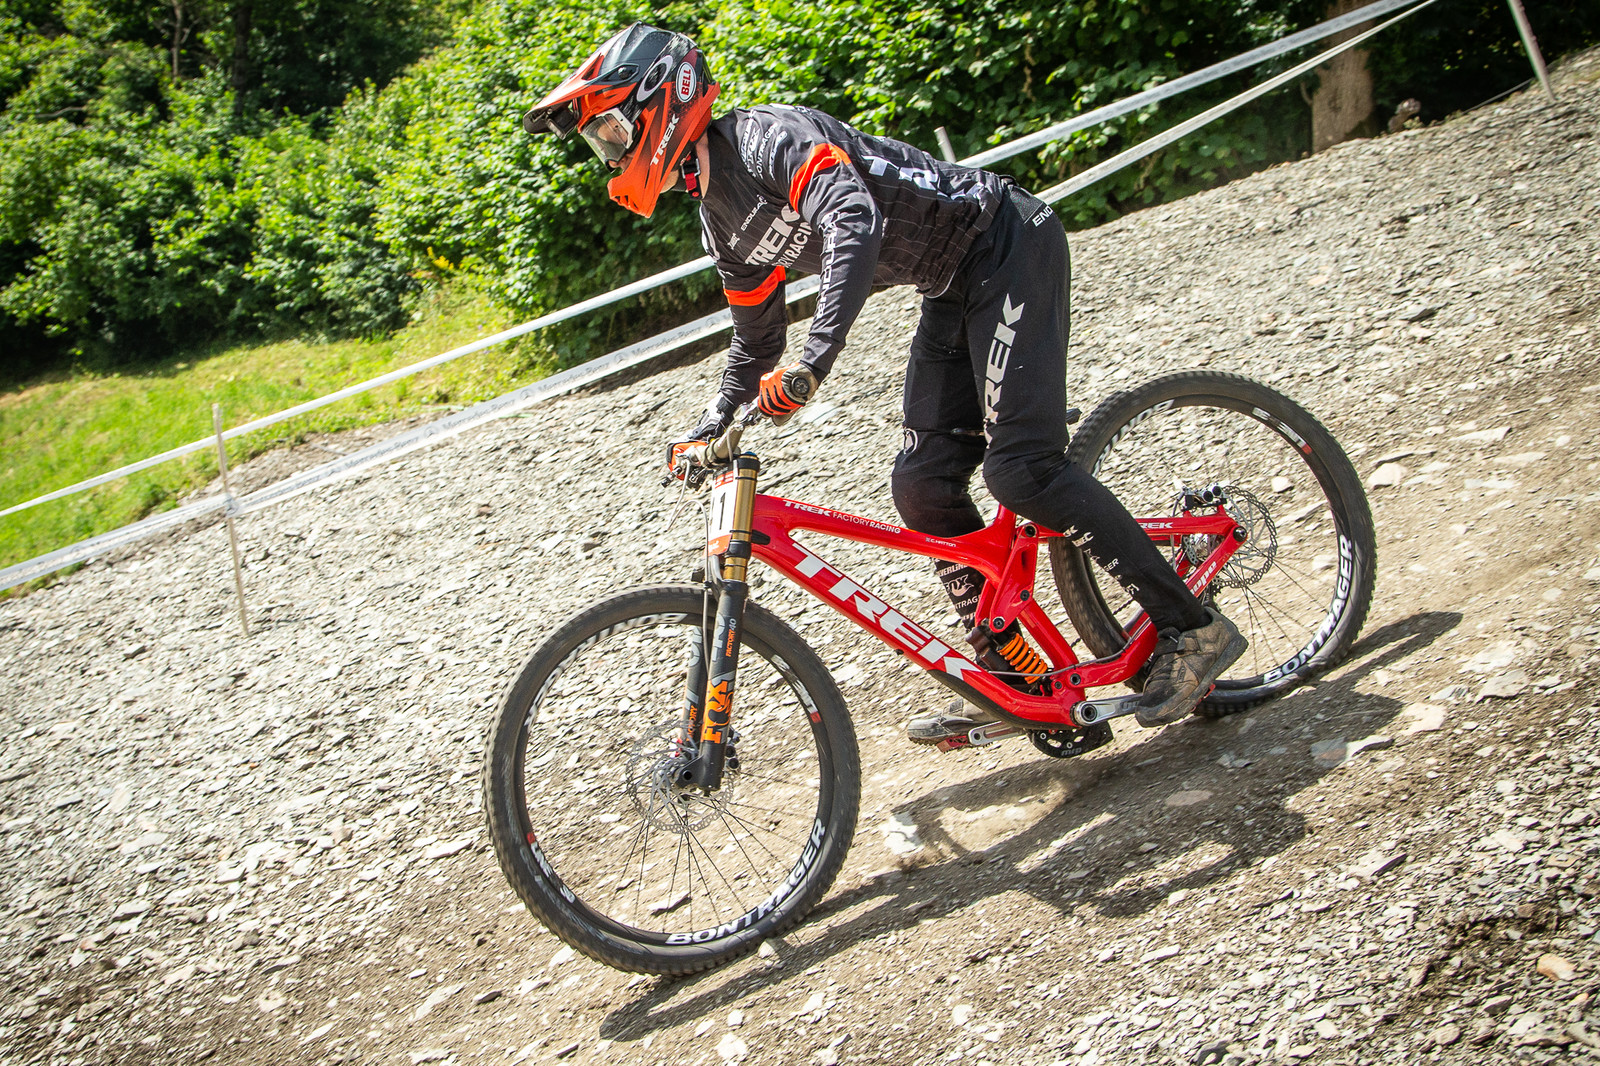 Charlie Hatton Trek Session - G-Out Project - Andorra World Cup DH - Mountain Biking Pictures - Vital MTB